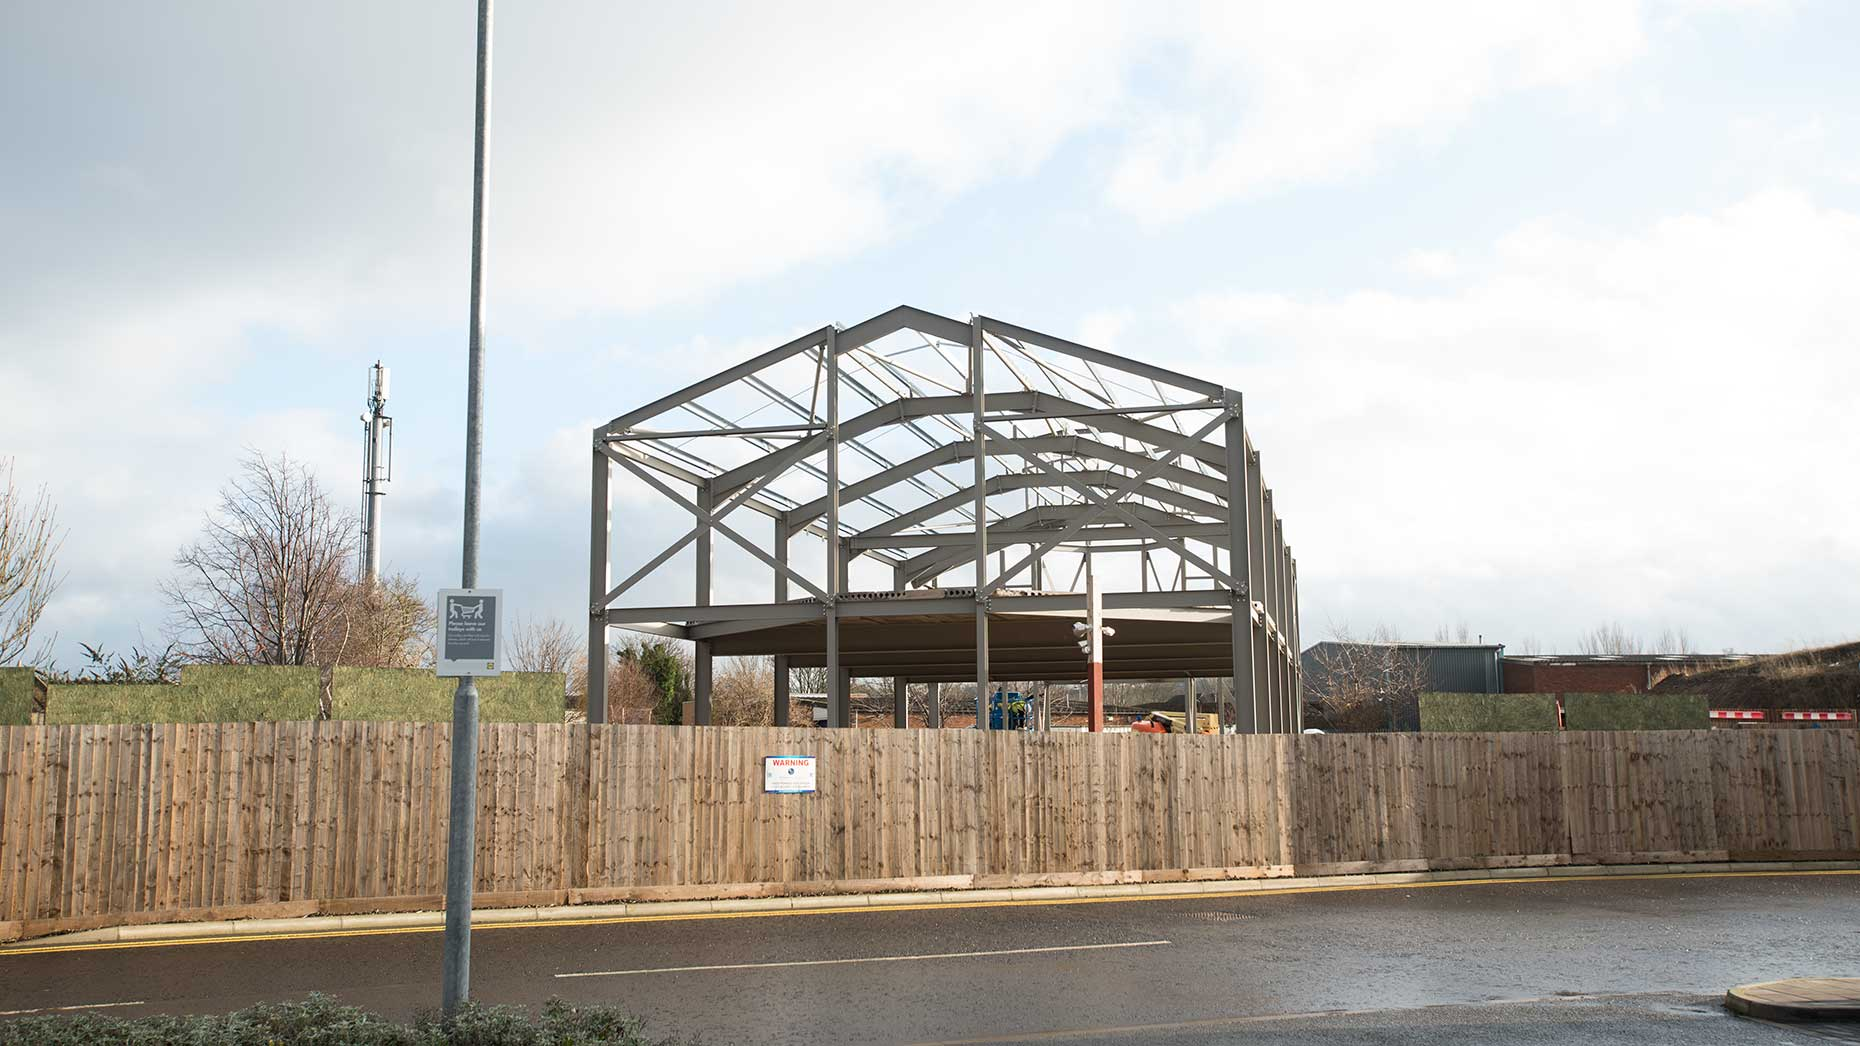 Lincoln Mosque Construction 07-12-2015 SS 2